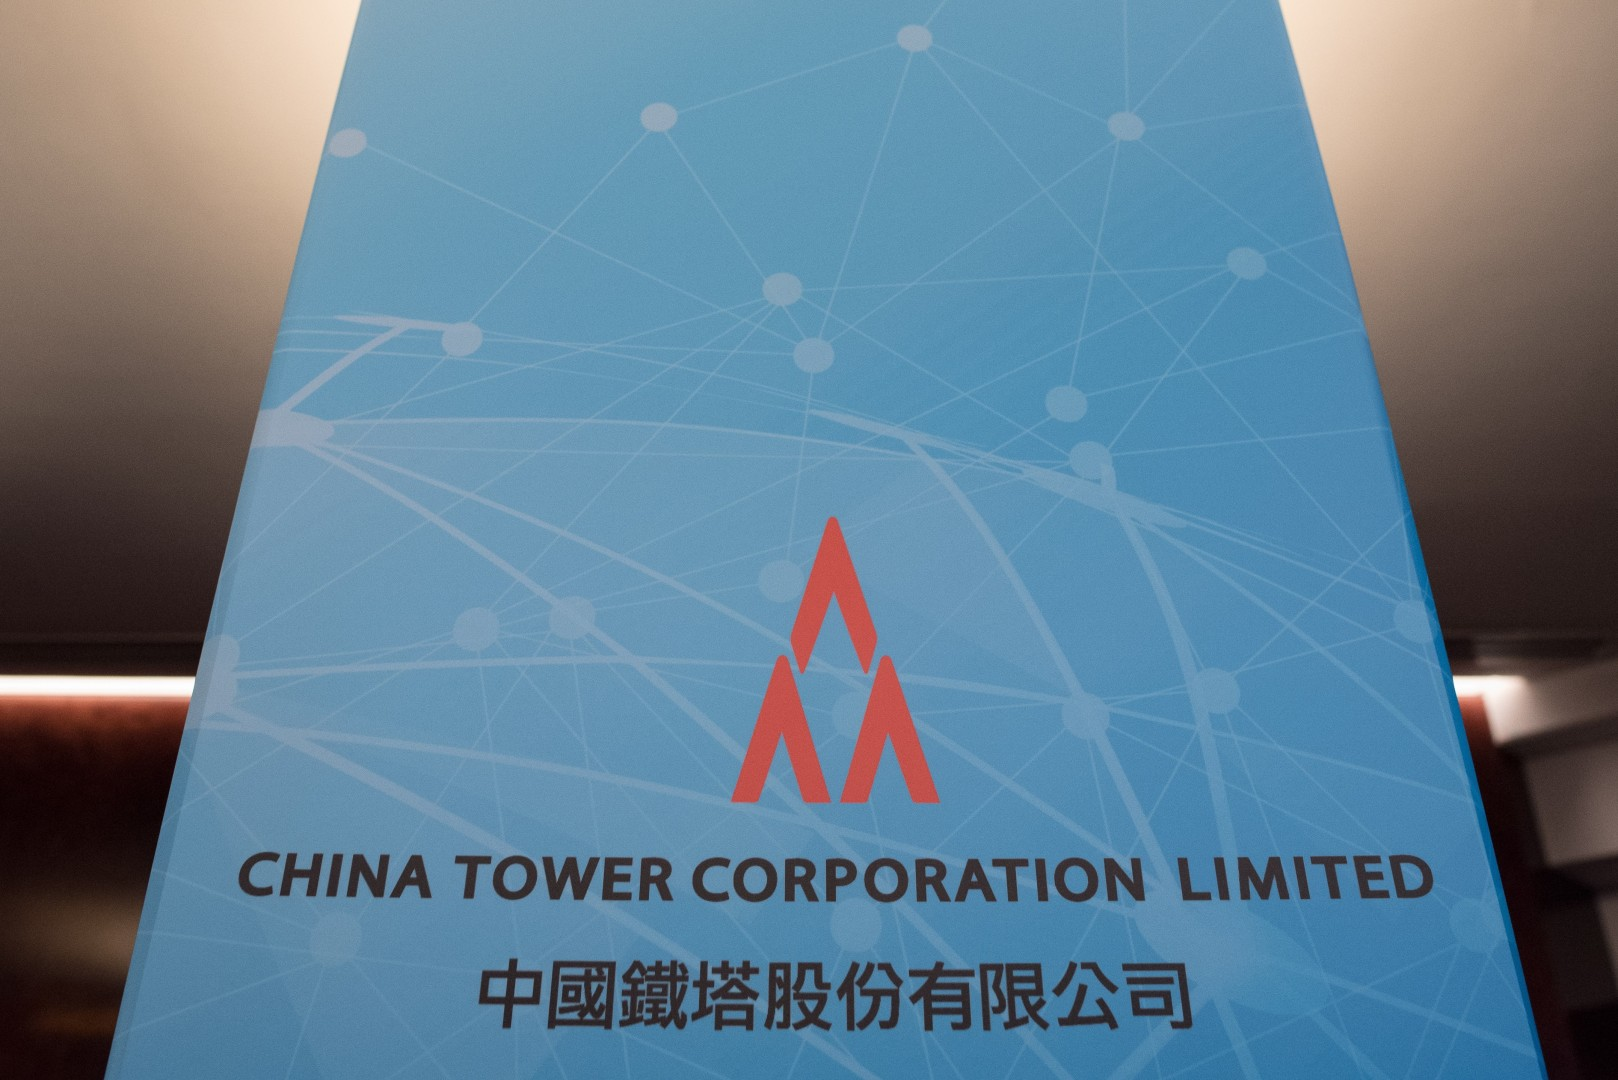 Shares in telecoms giant China Tower rise as IPO lock-up period ends